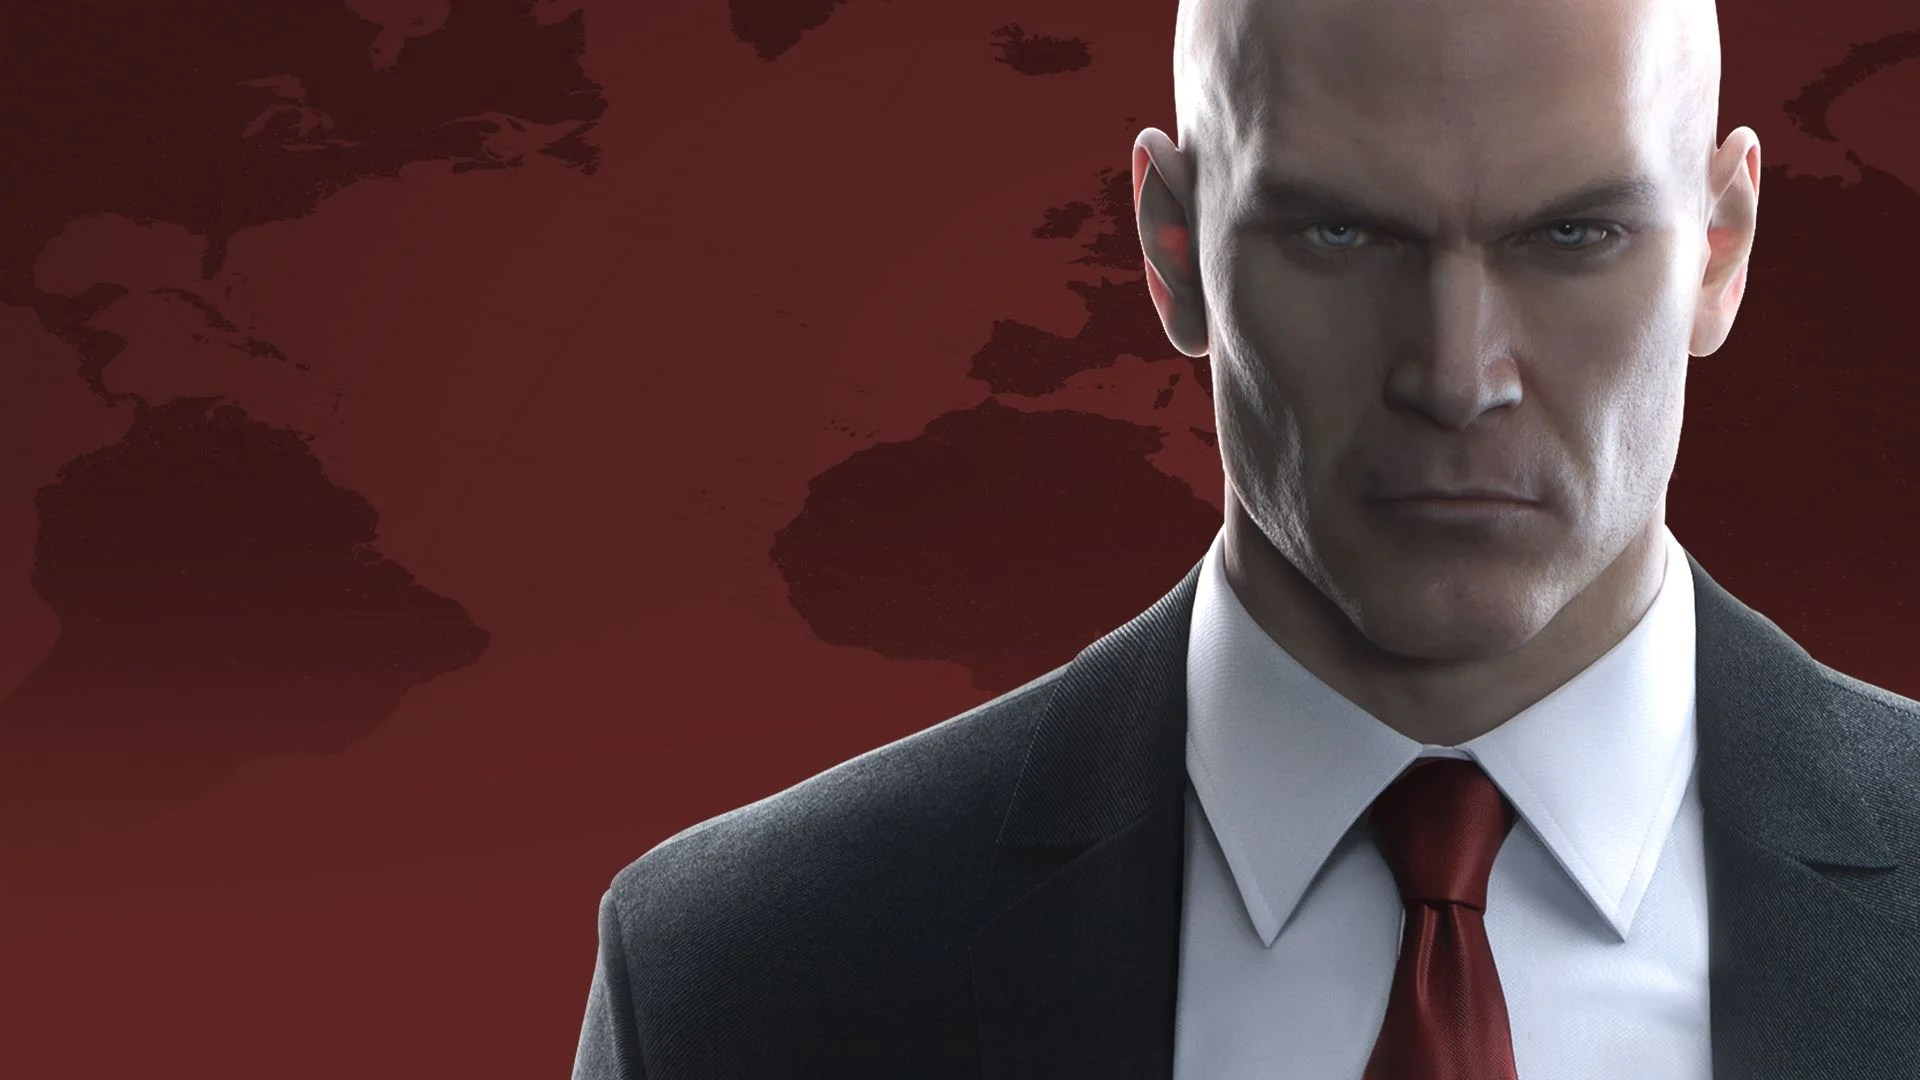 Hitman Definitive Edition is coming to PS4 and Xbox One